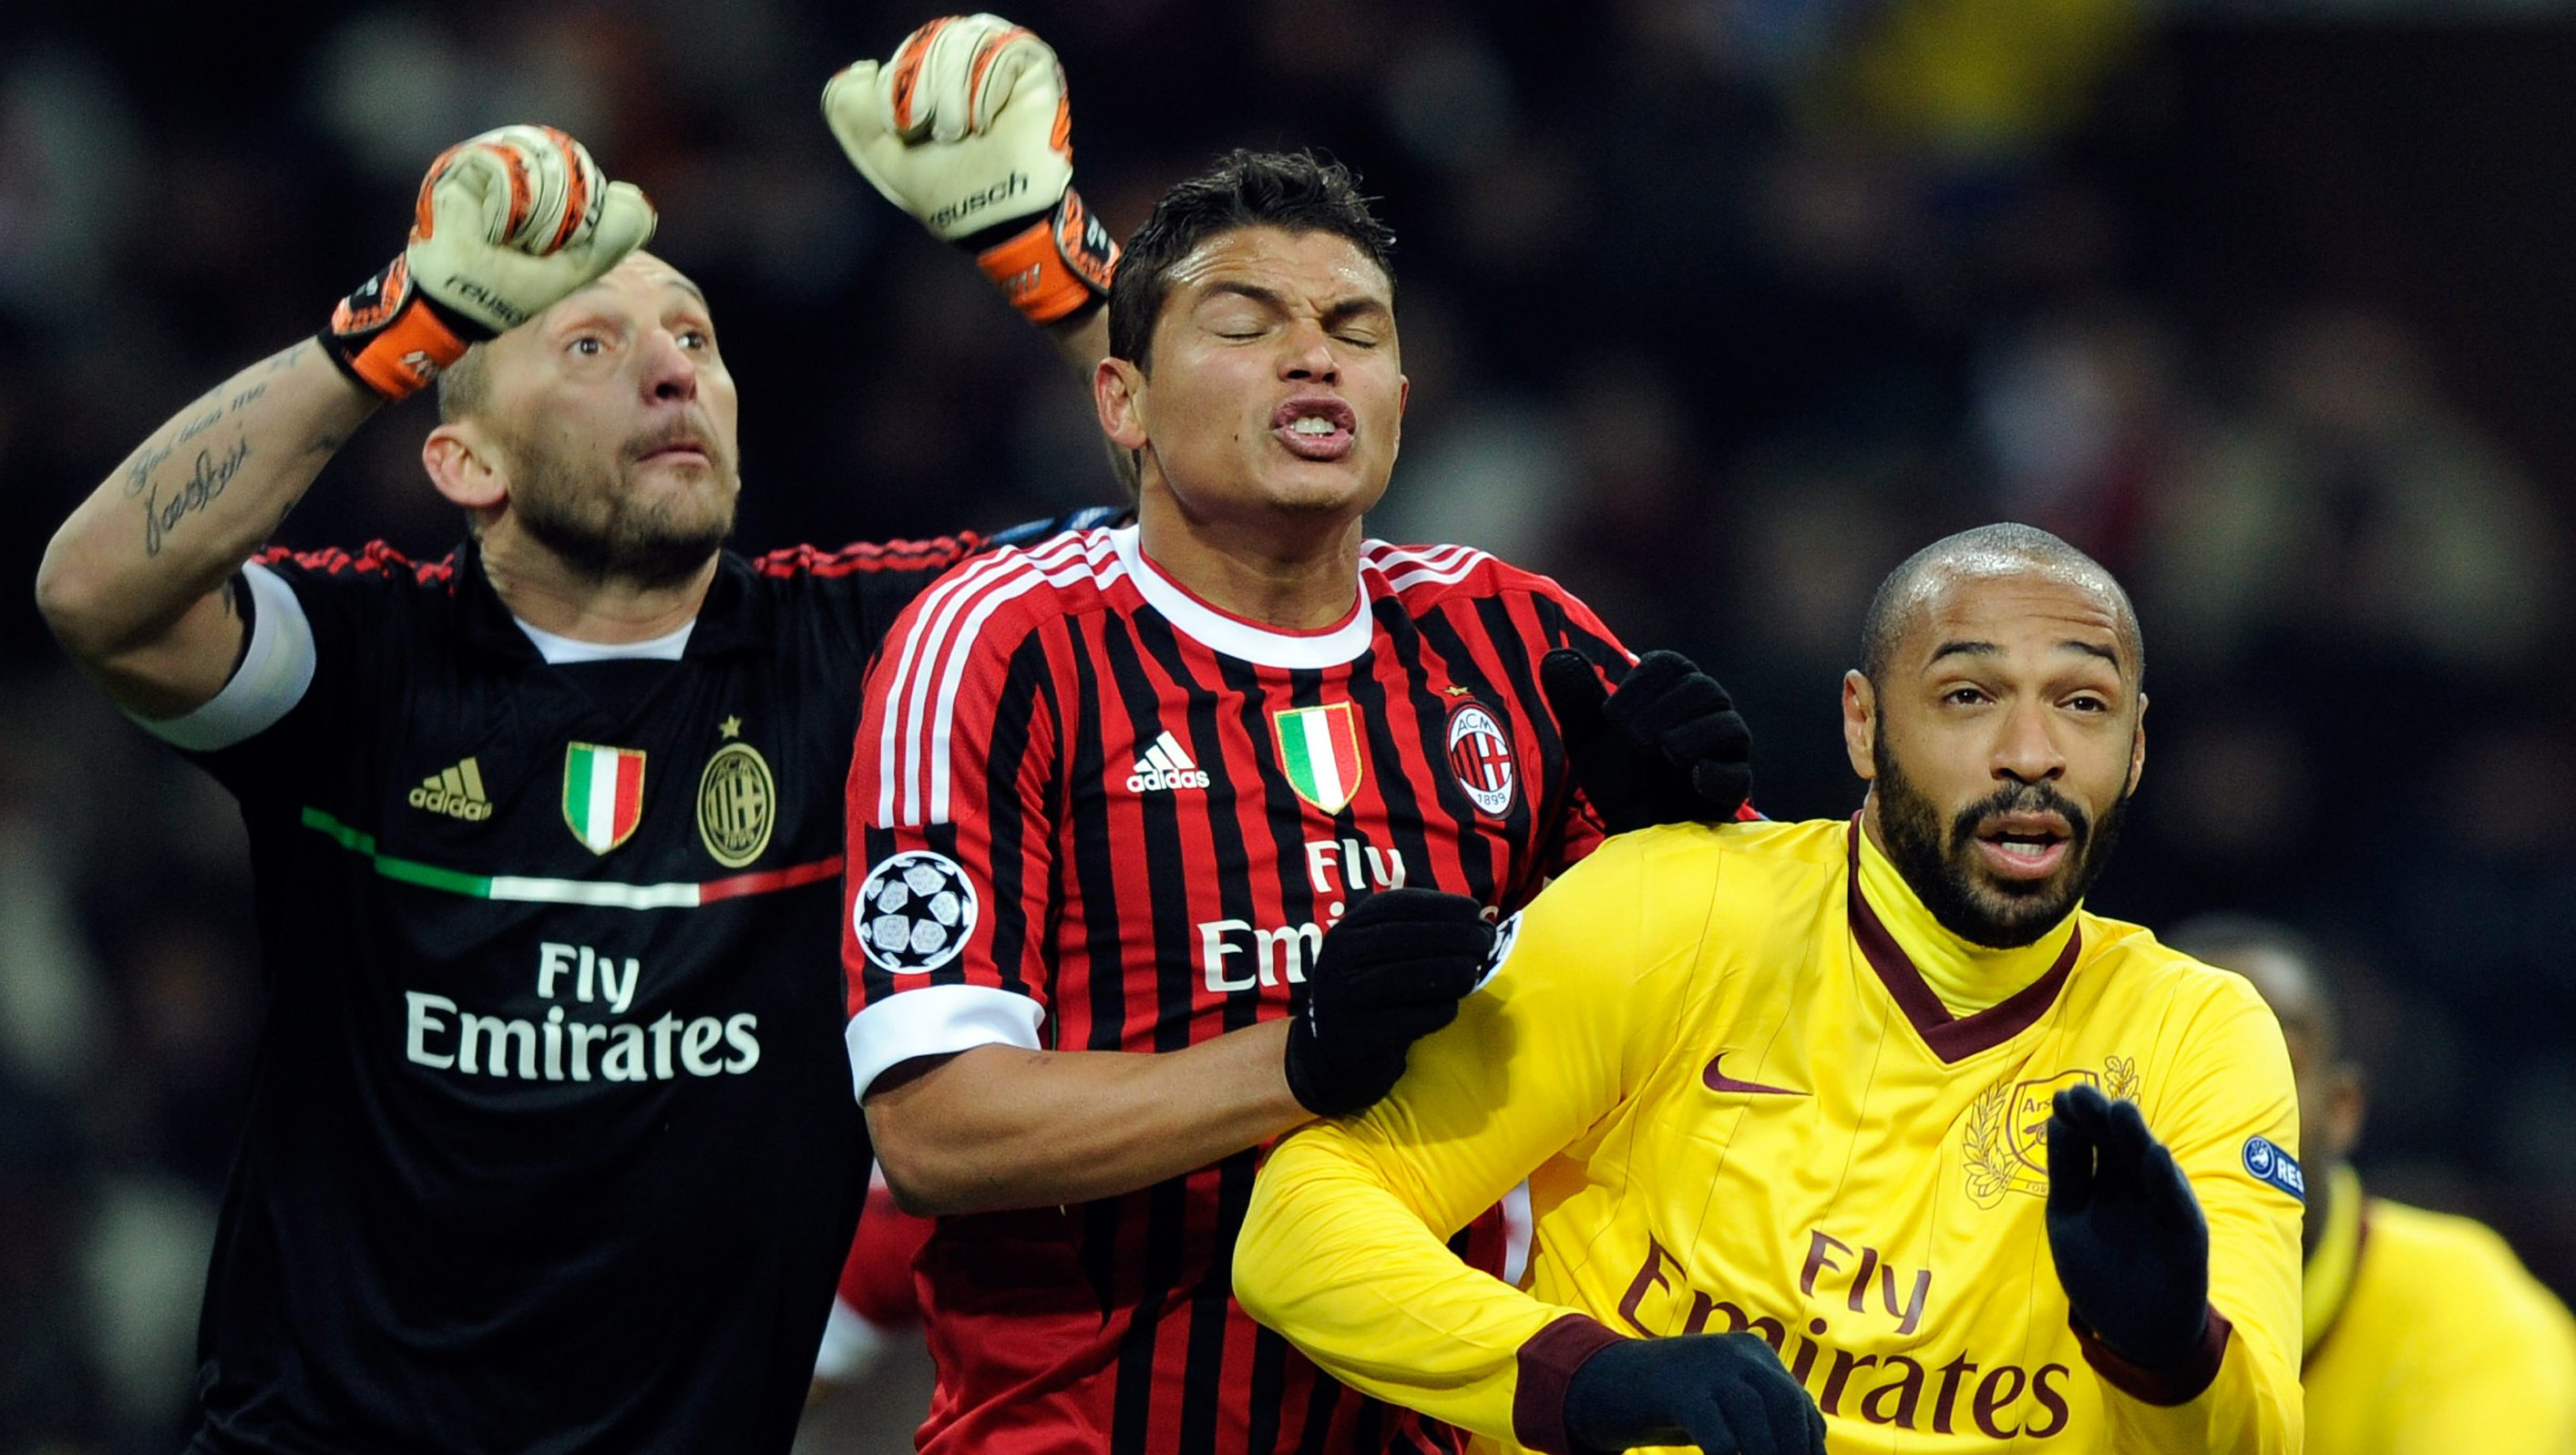 Arsenal gets AC Milan in Europa League Round of 16